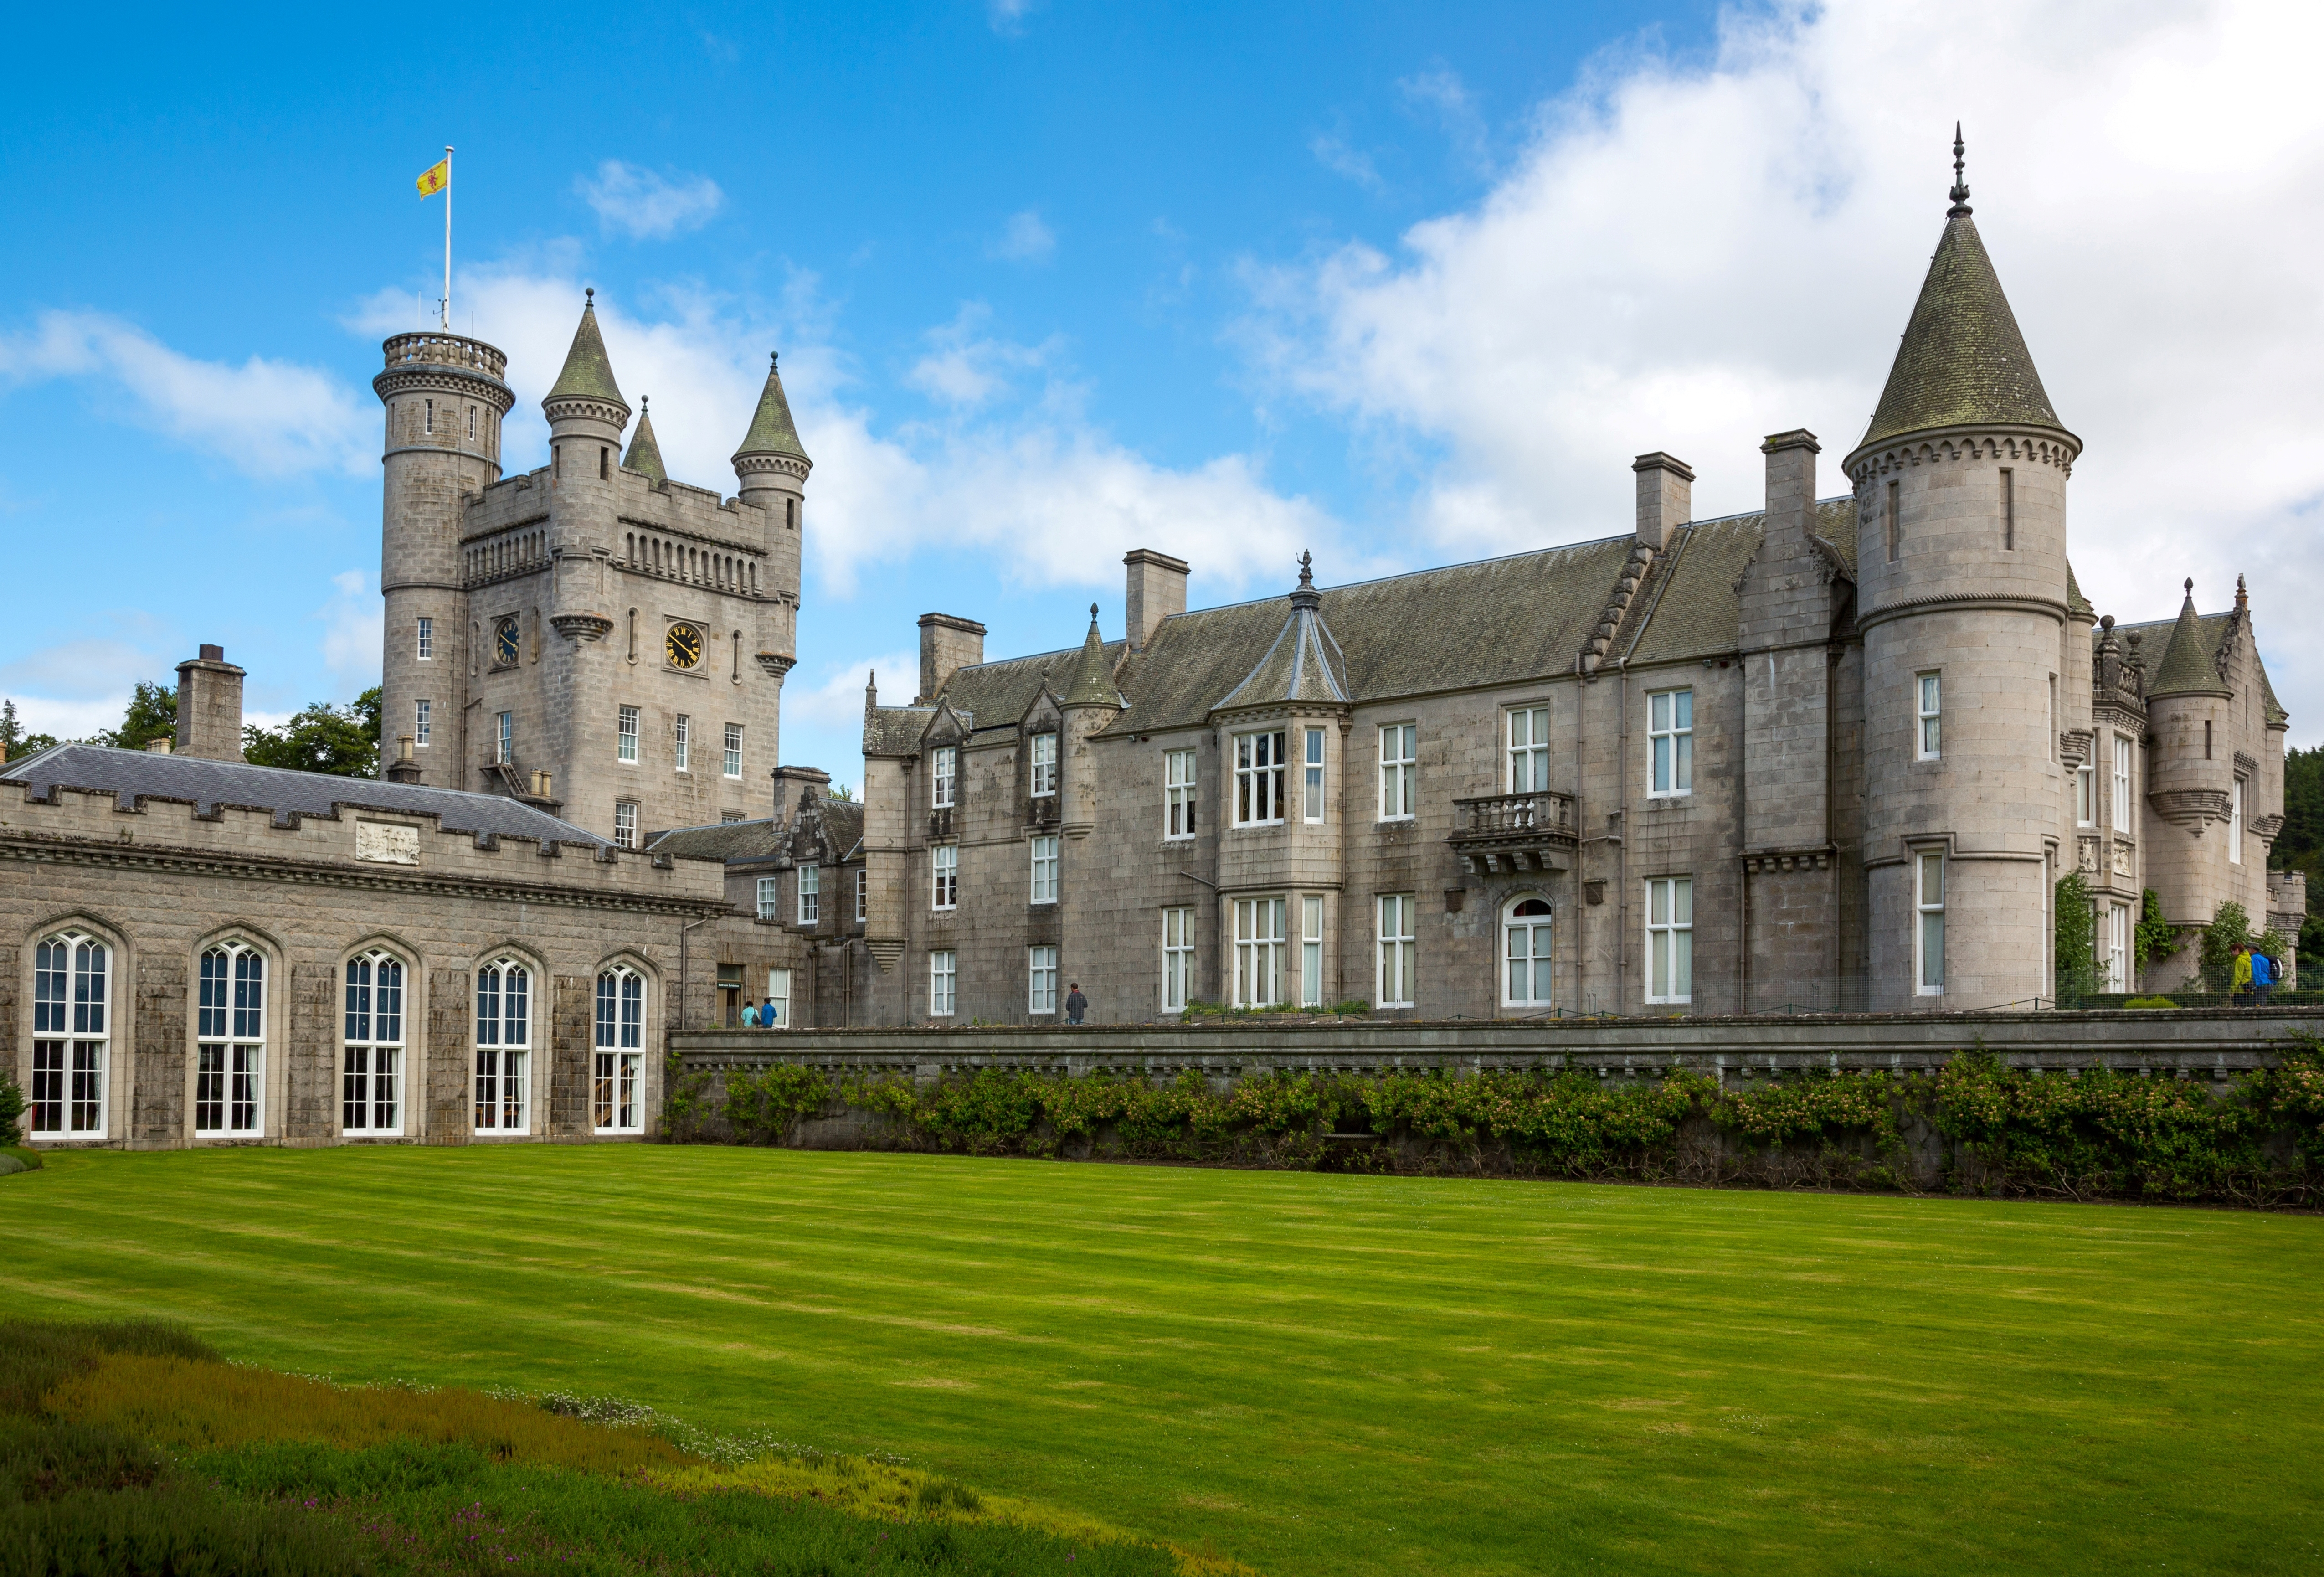 Great Britain. Scotland. Aberdeenshire. The Balmoral Castle. Summer Residence of the British Royal Family.